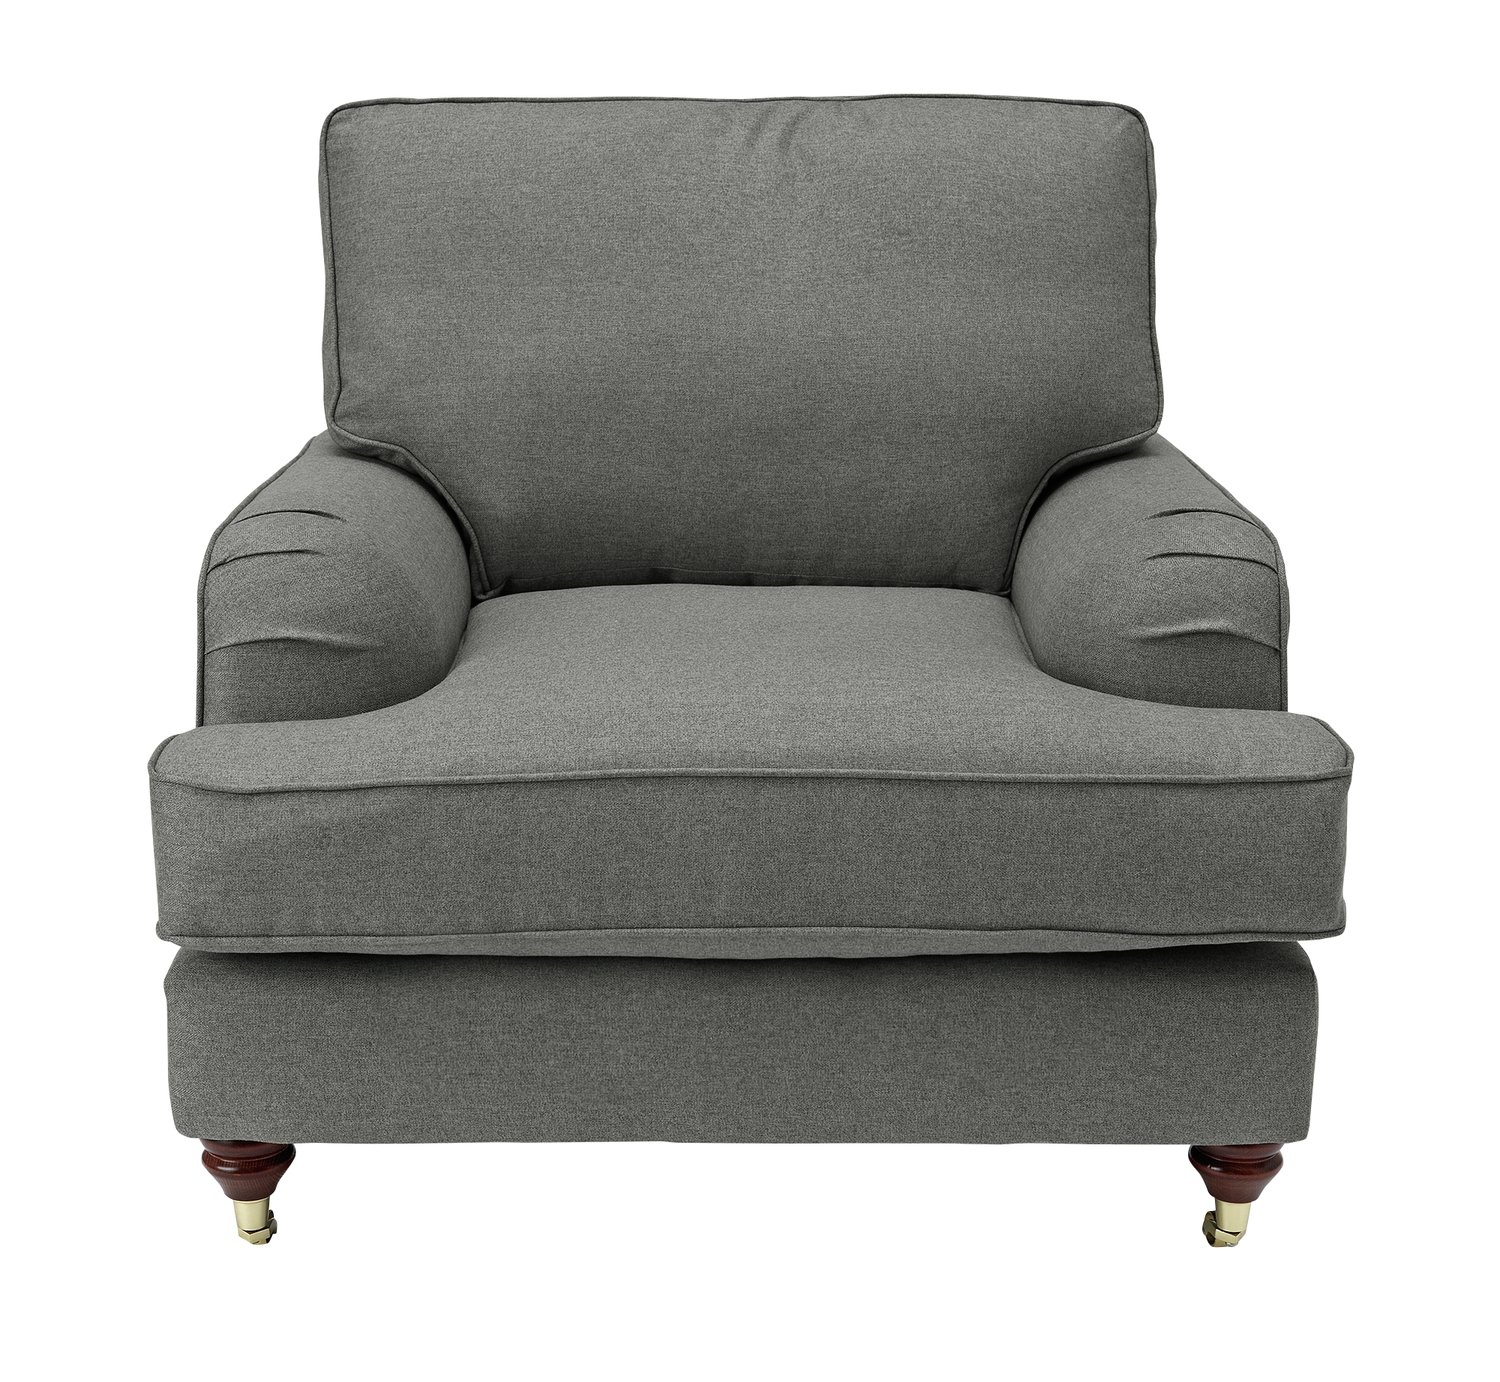 Argos Home Abberton Tweed Fabric Armchair - Light Grey